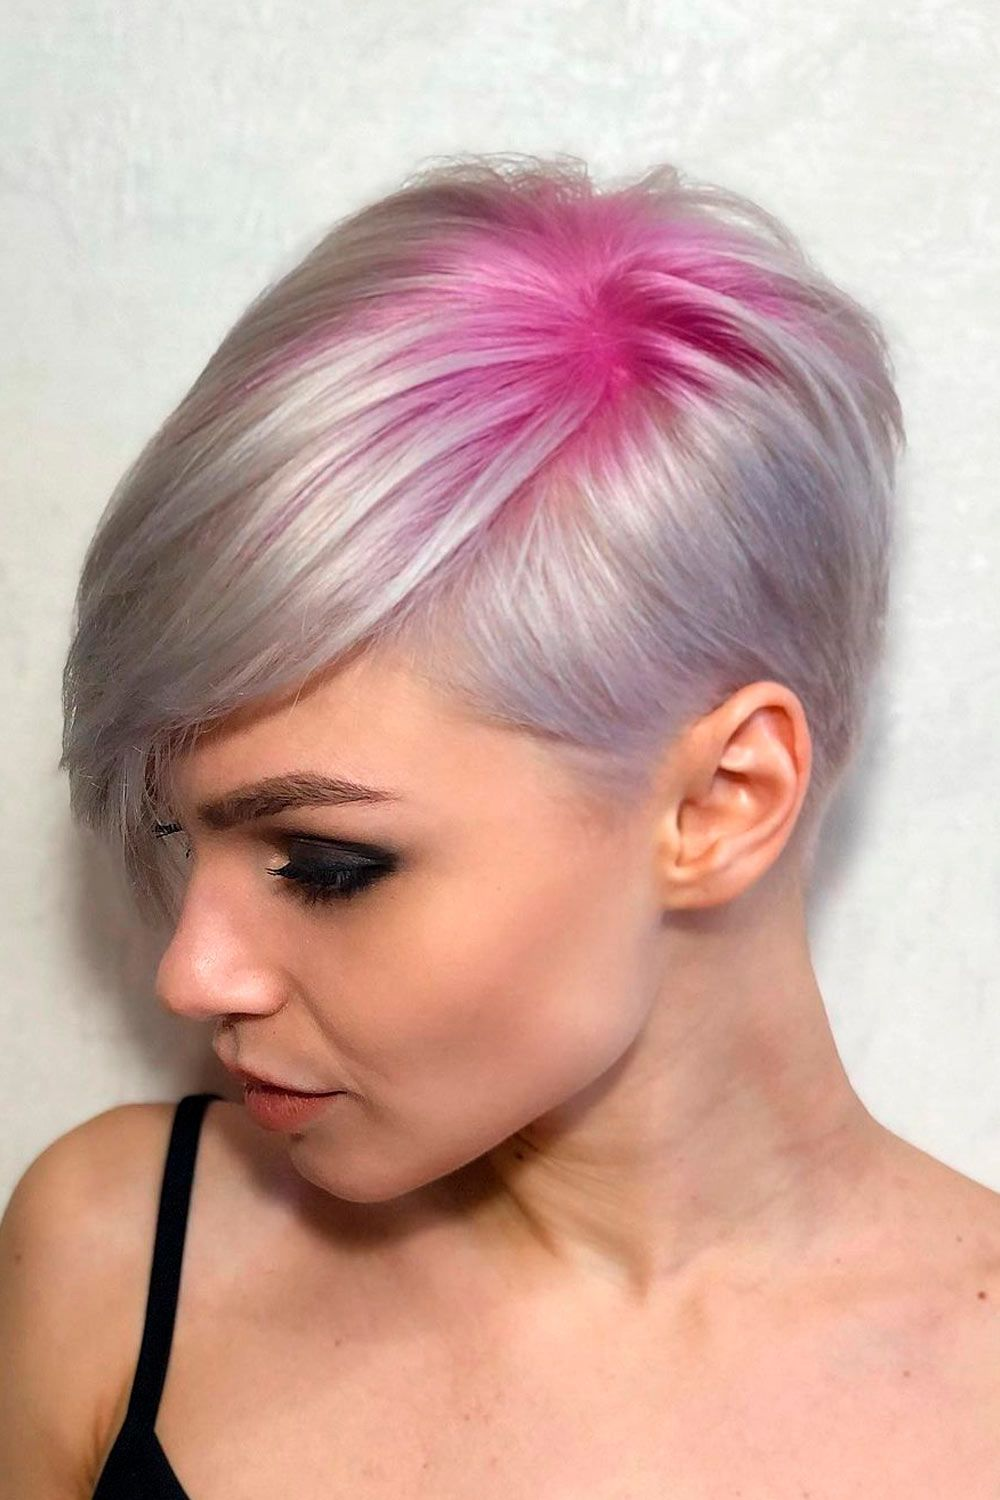 Pink Highlights On Blonde Hair, short hair blonde ombre, ombre on short hair, ombre hair short hair